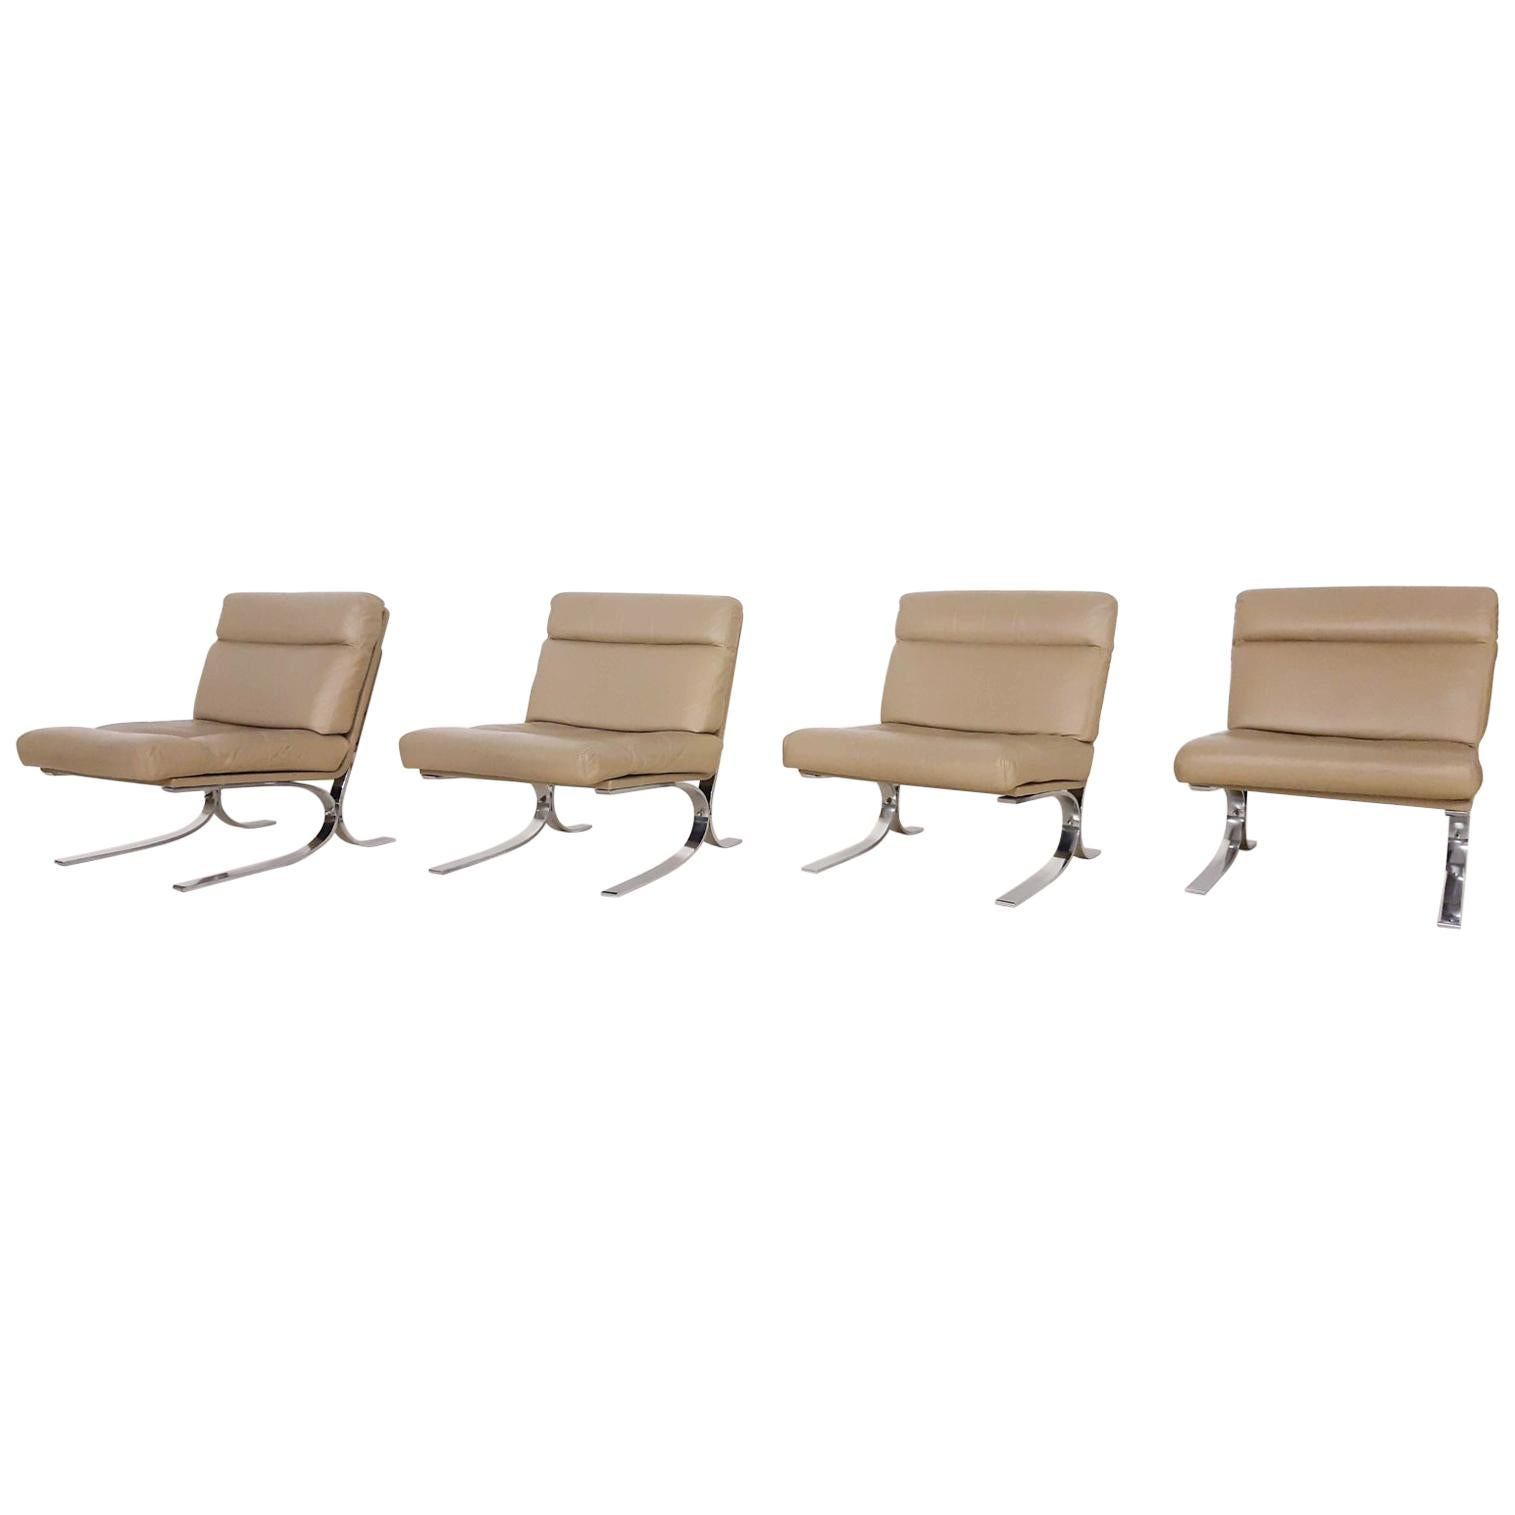 Set of 4 Leather Lounge Chairs Attributed to Paul Tuttle for Strässle, 1970s